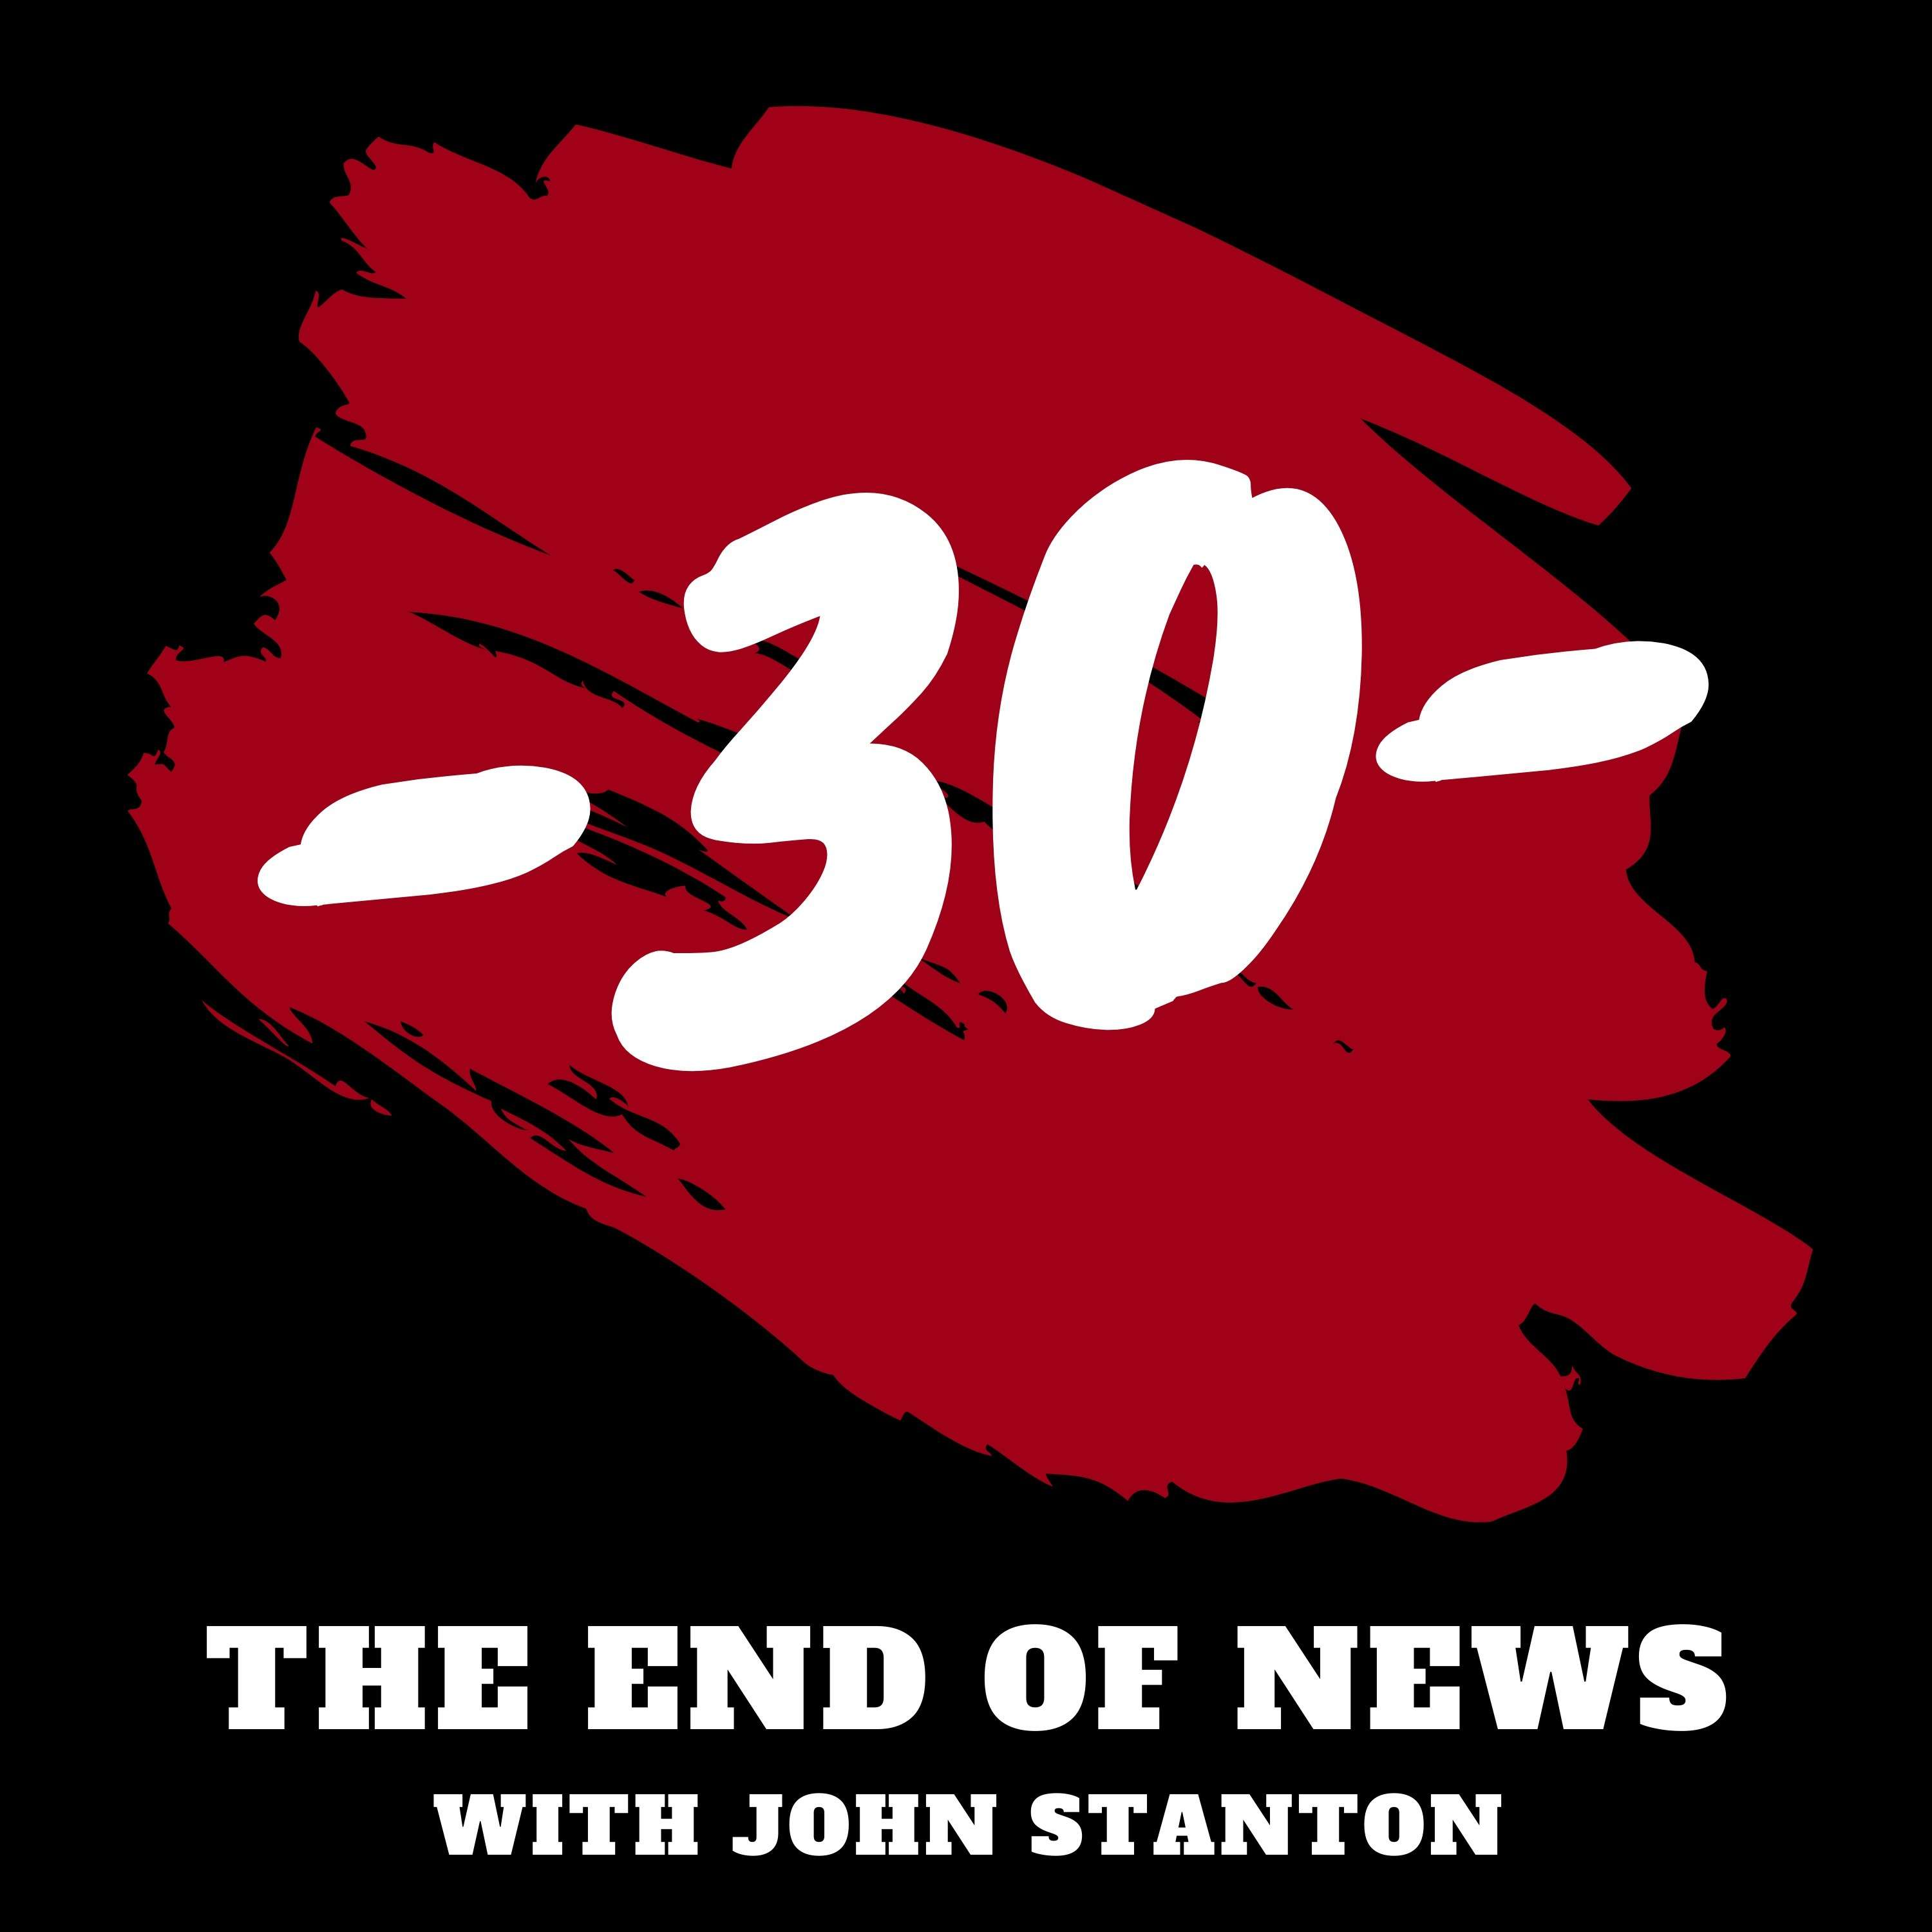 The -30-: The End of News